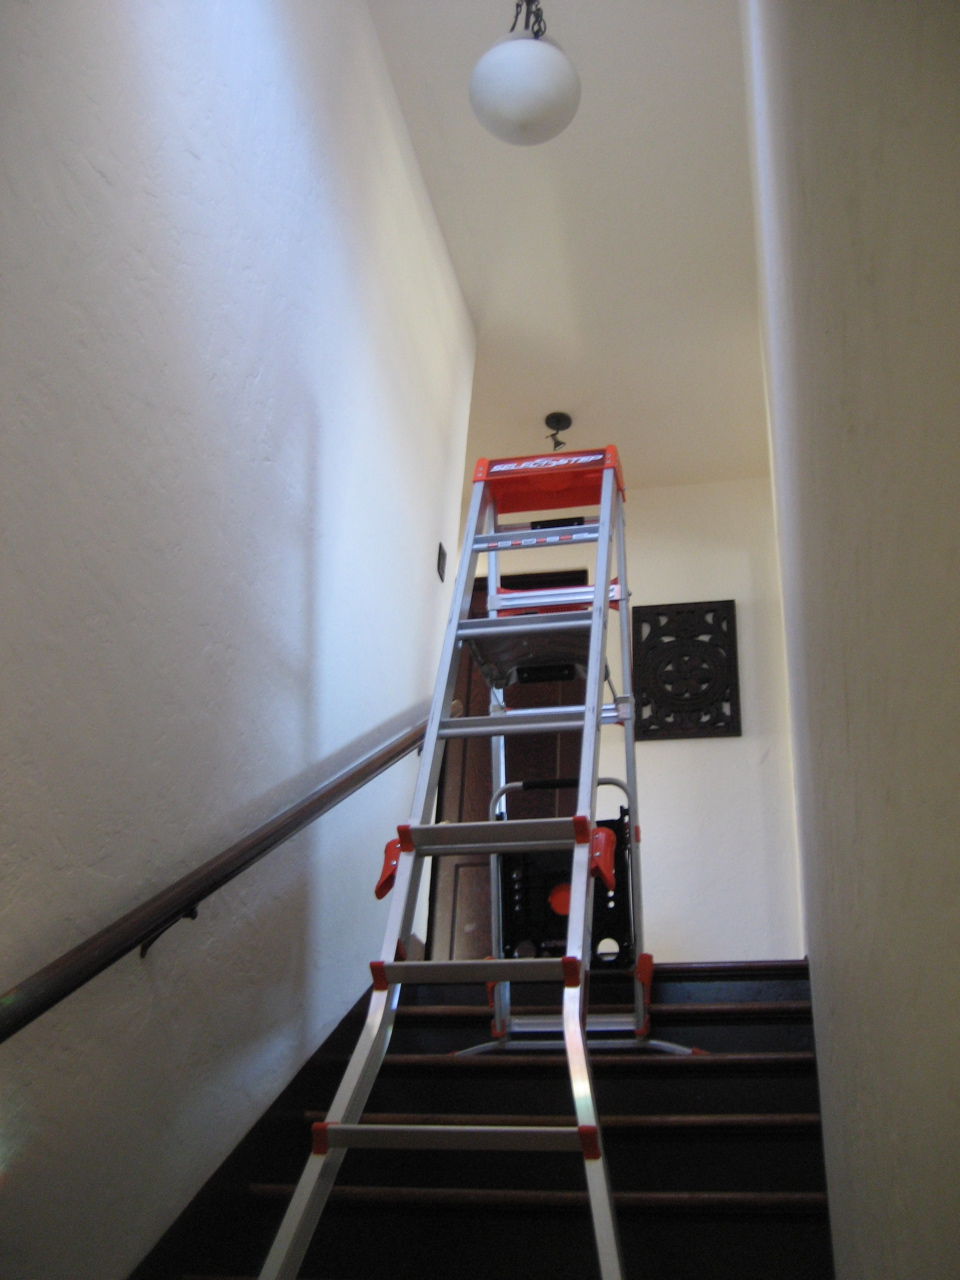 Lighting Basement Washroom Stairs: Little Giant Select Step Ladder Review